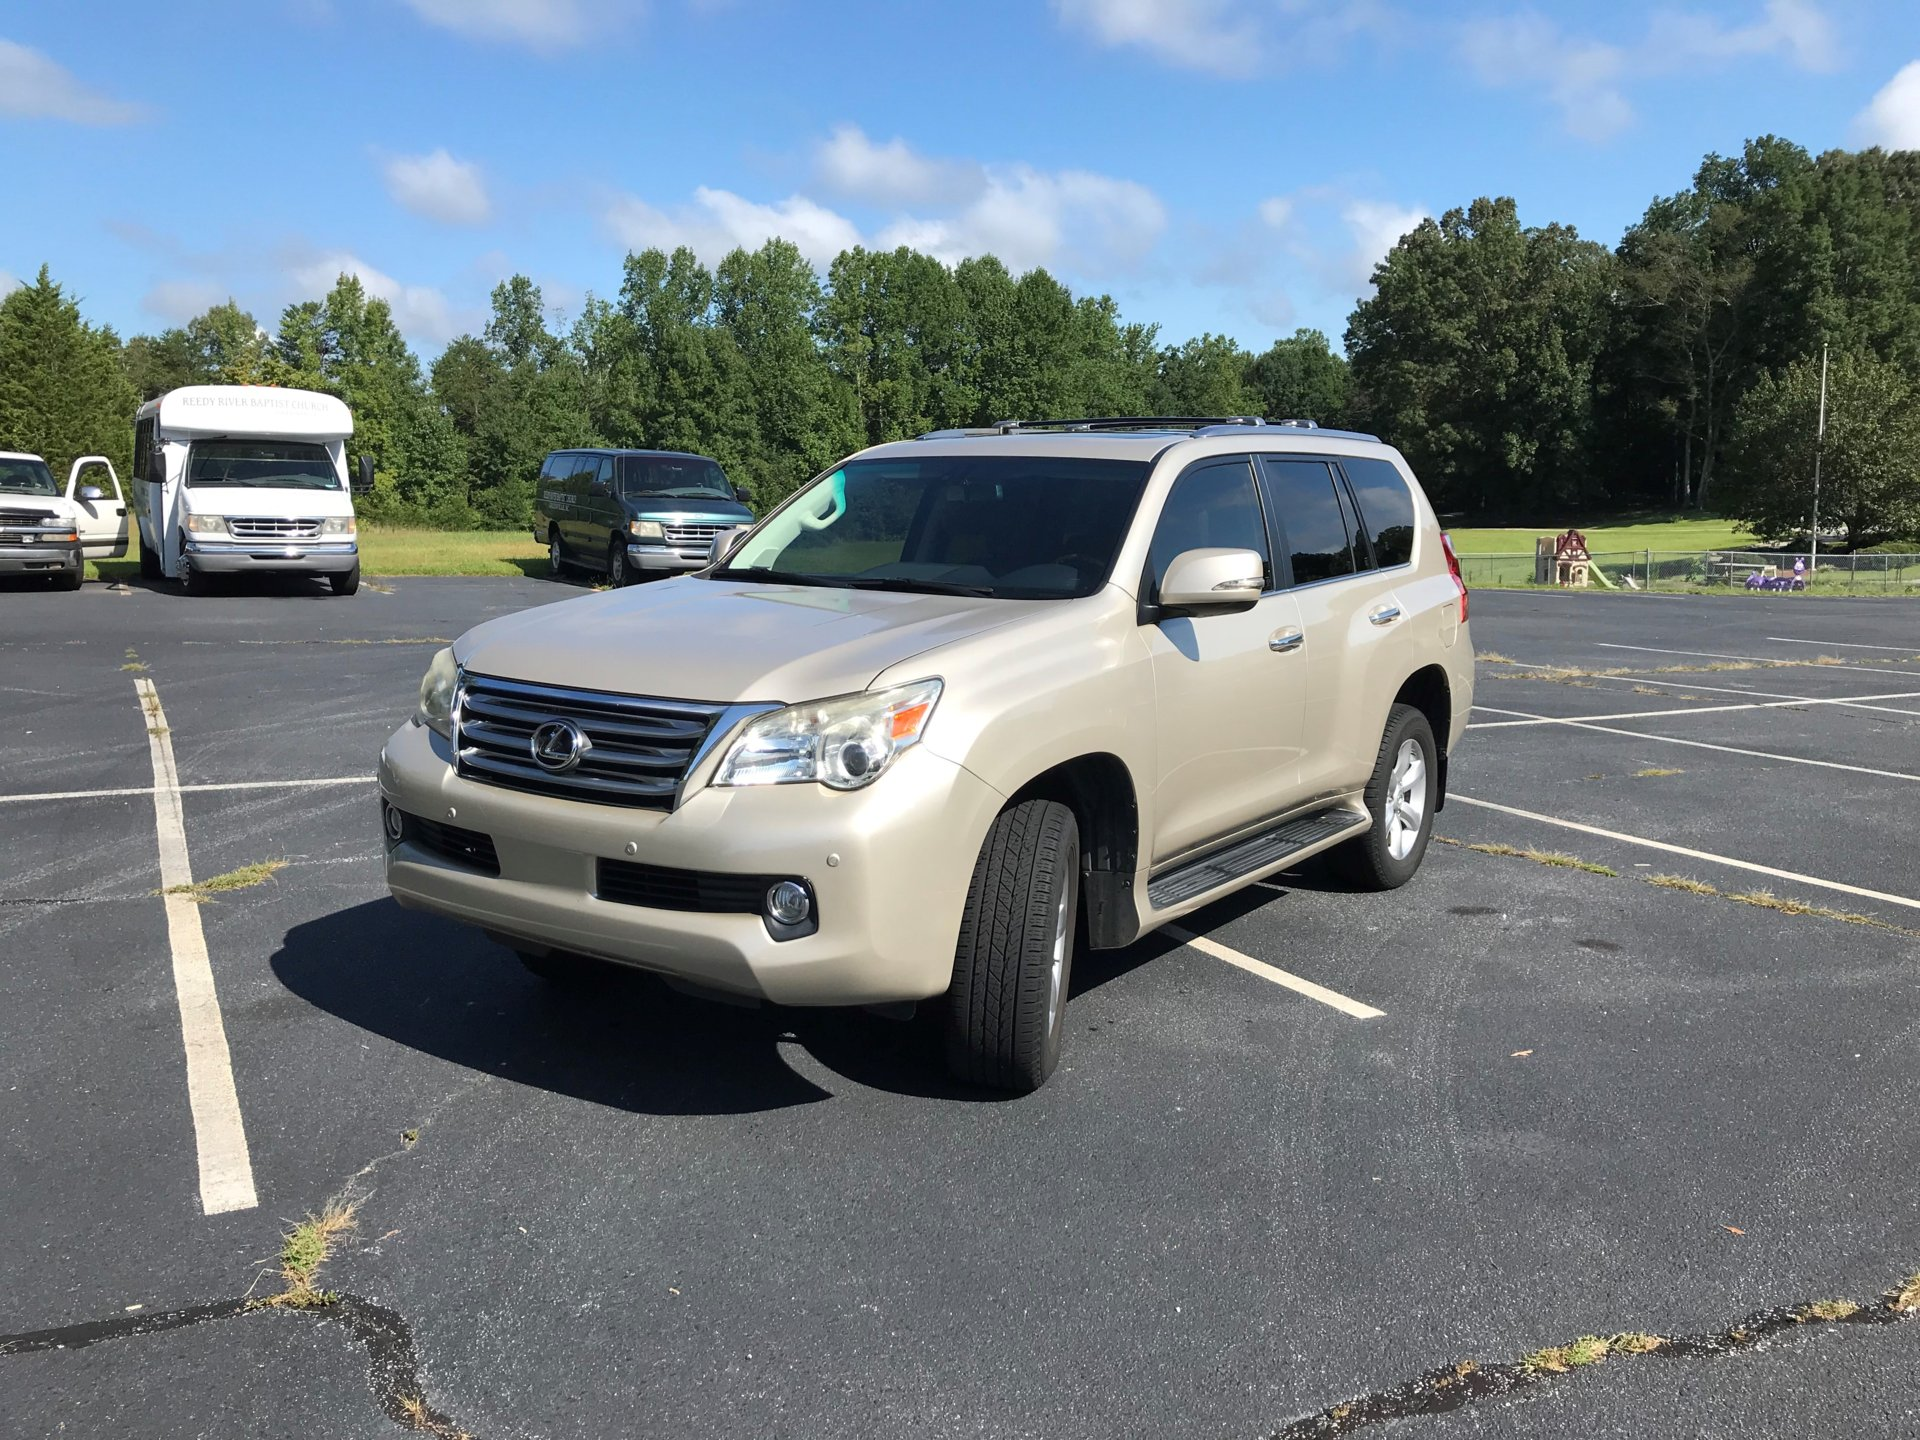 For Sale - 2010 GX 460 For Sale- Upstate SC | IH8MUD Forum